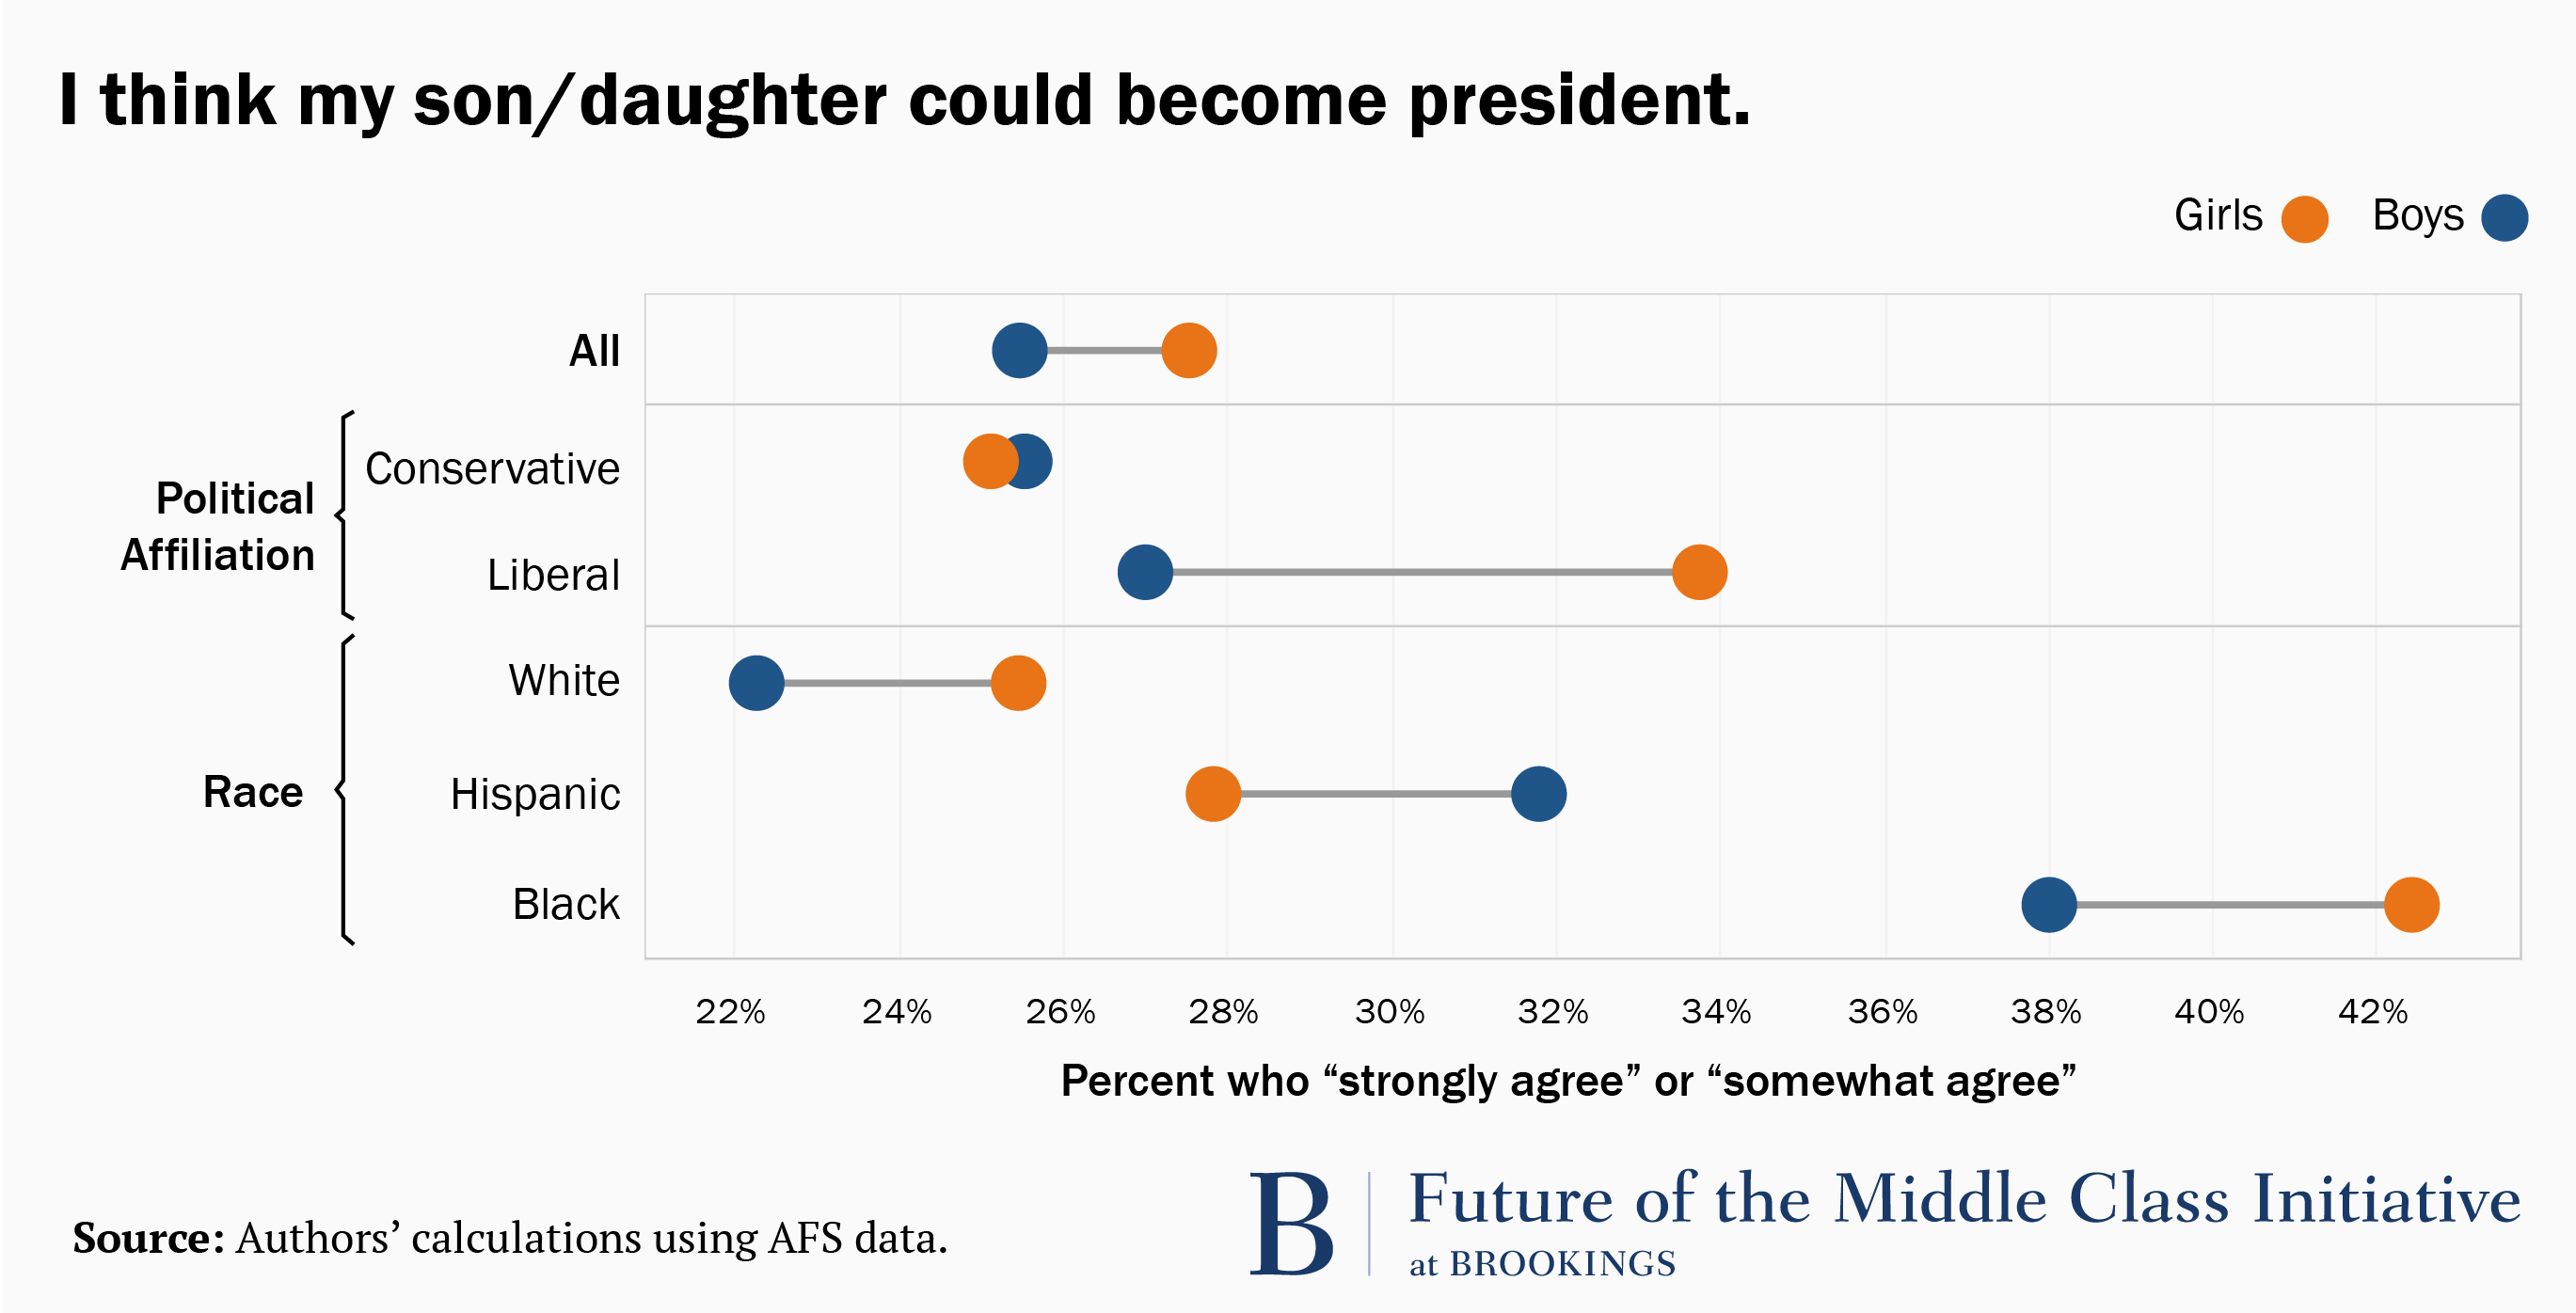 are boys or girls more likely to be president